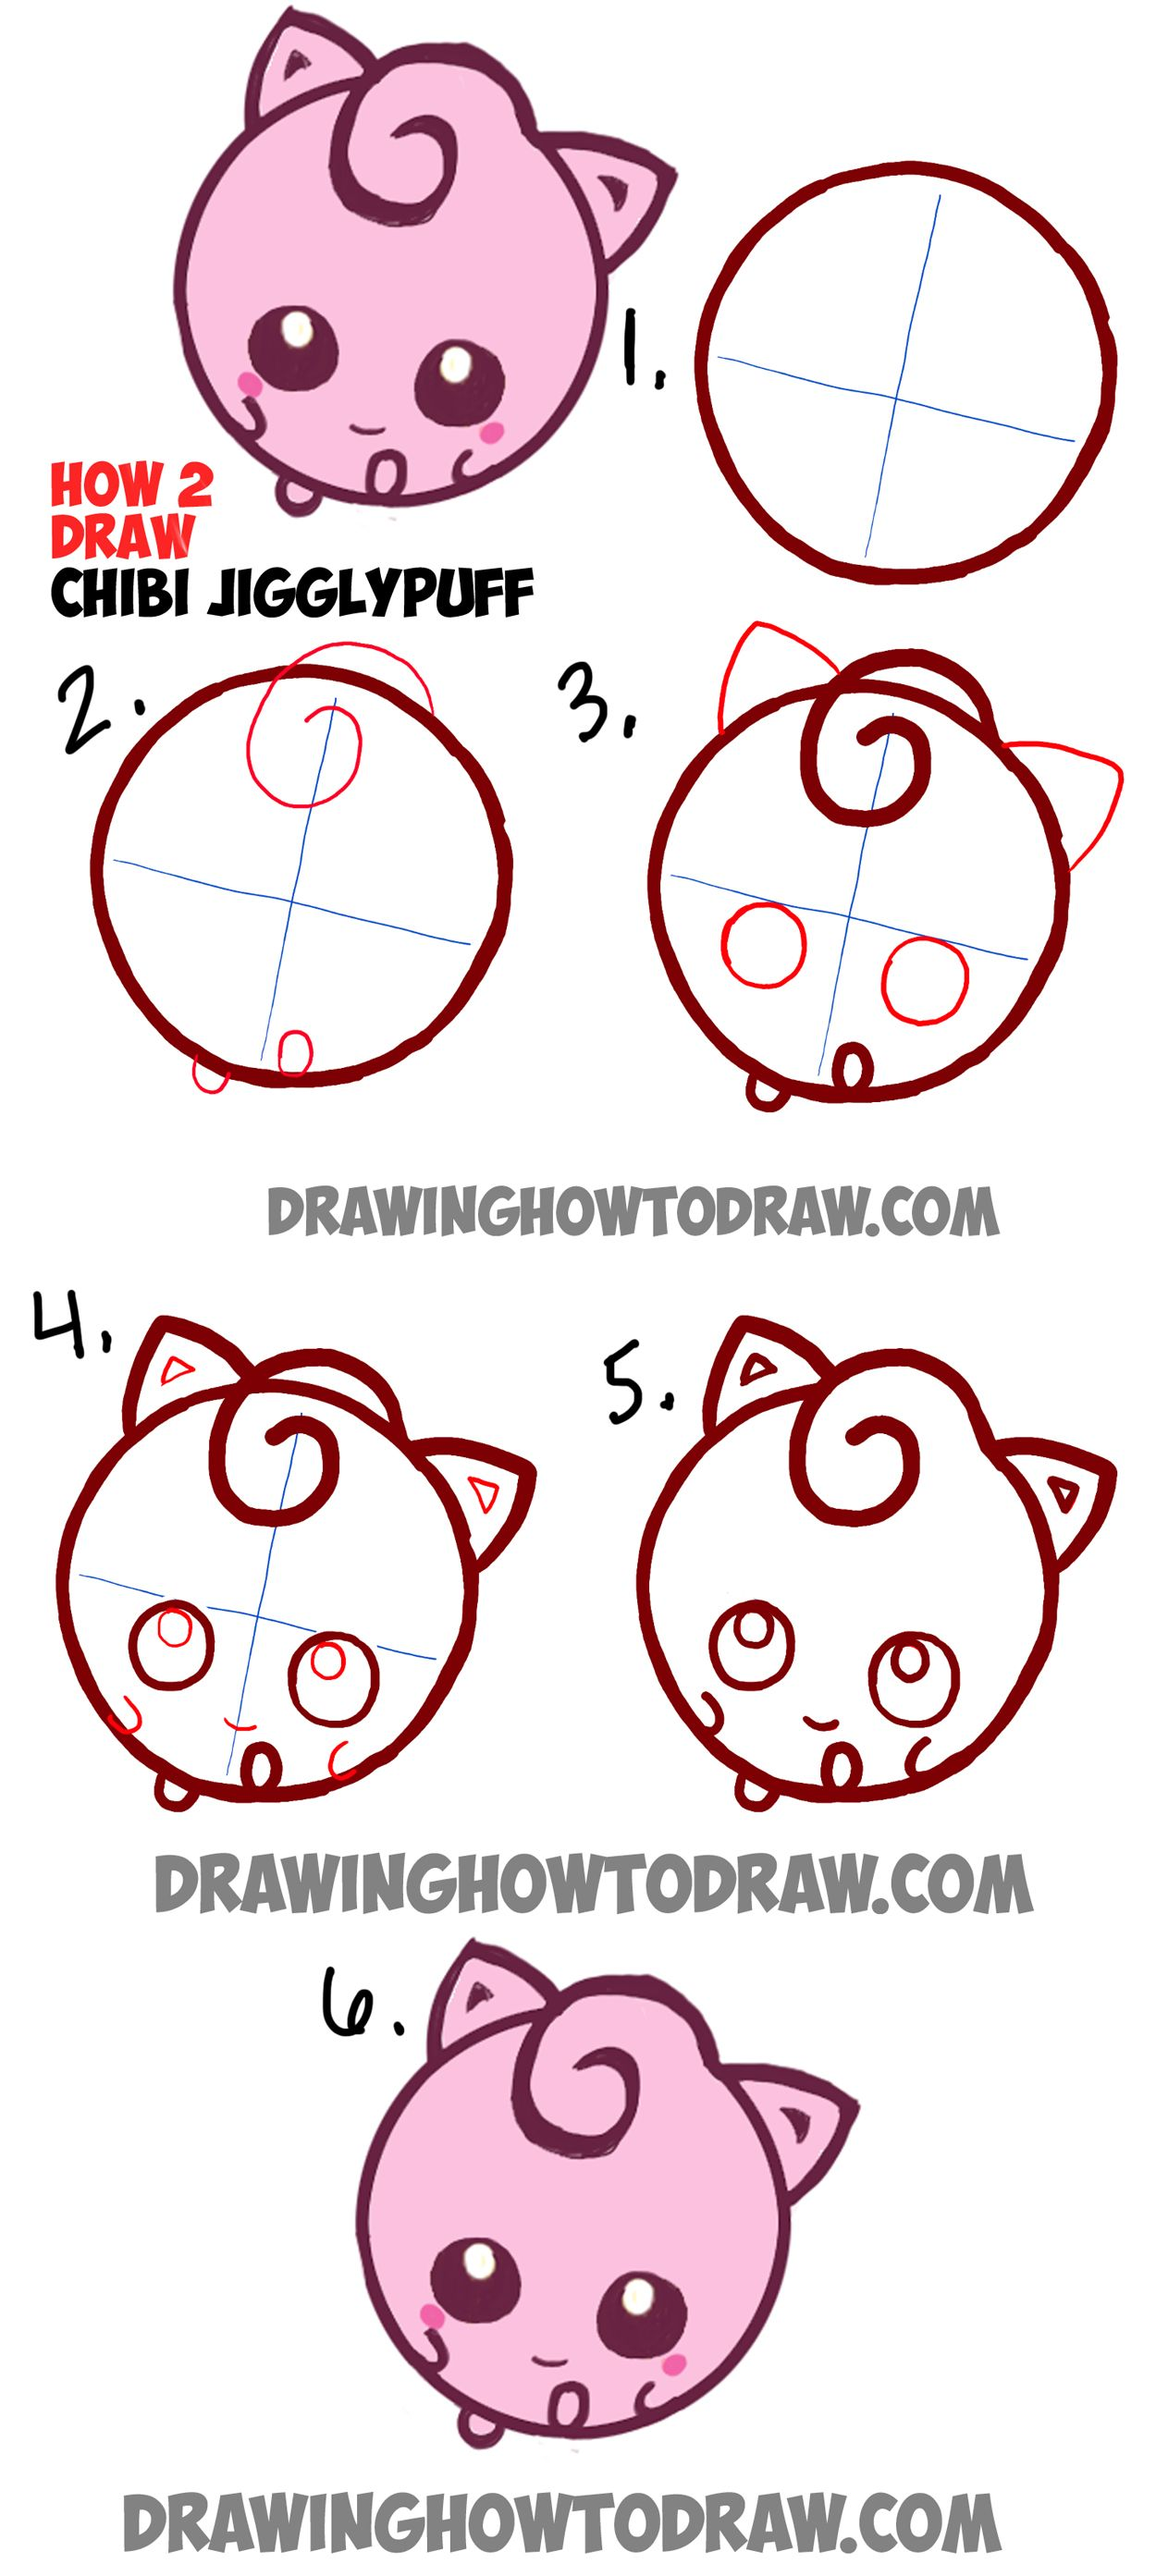 How To Draw Cute Baby Chibi Jigglypuff From Pokemon In Easy Steps Tutorial How To Draw Step By Step Drawing Tutorials Pokemon Drawings Step By Step Drawing Drawing Tutorial